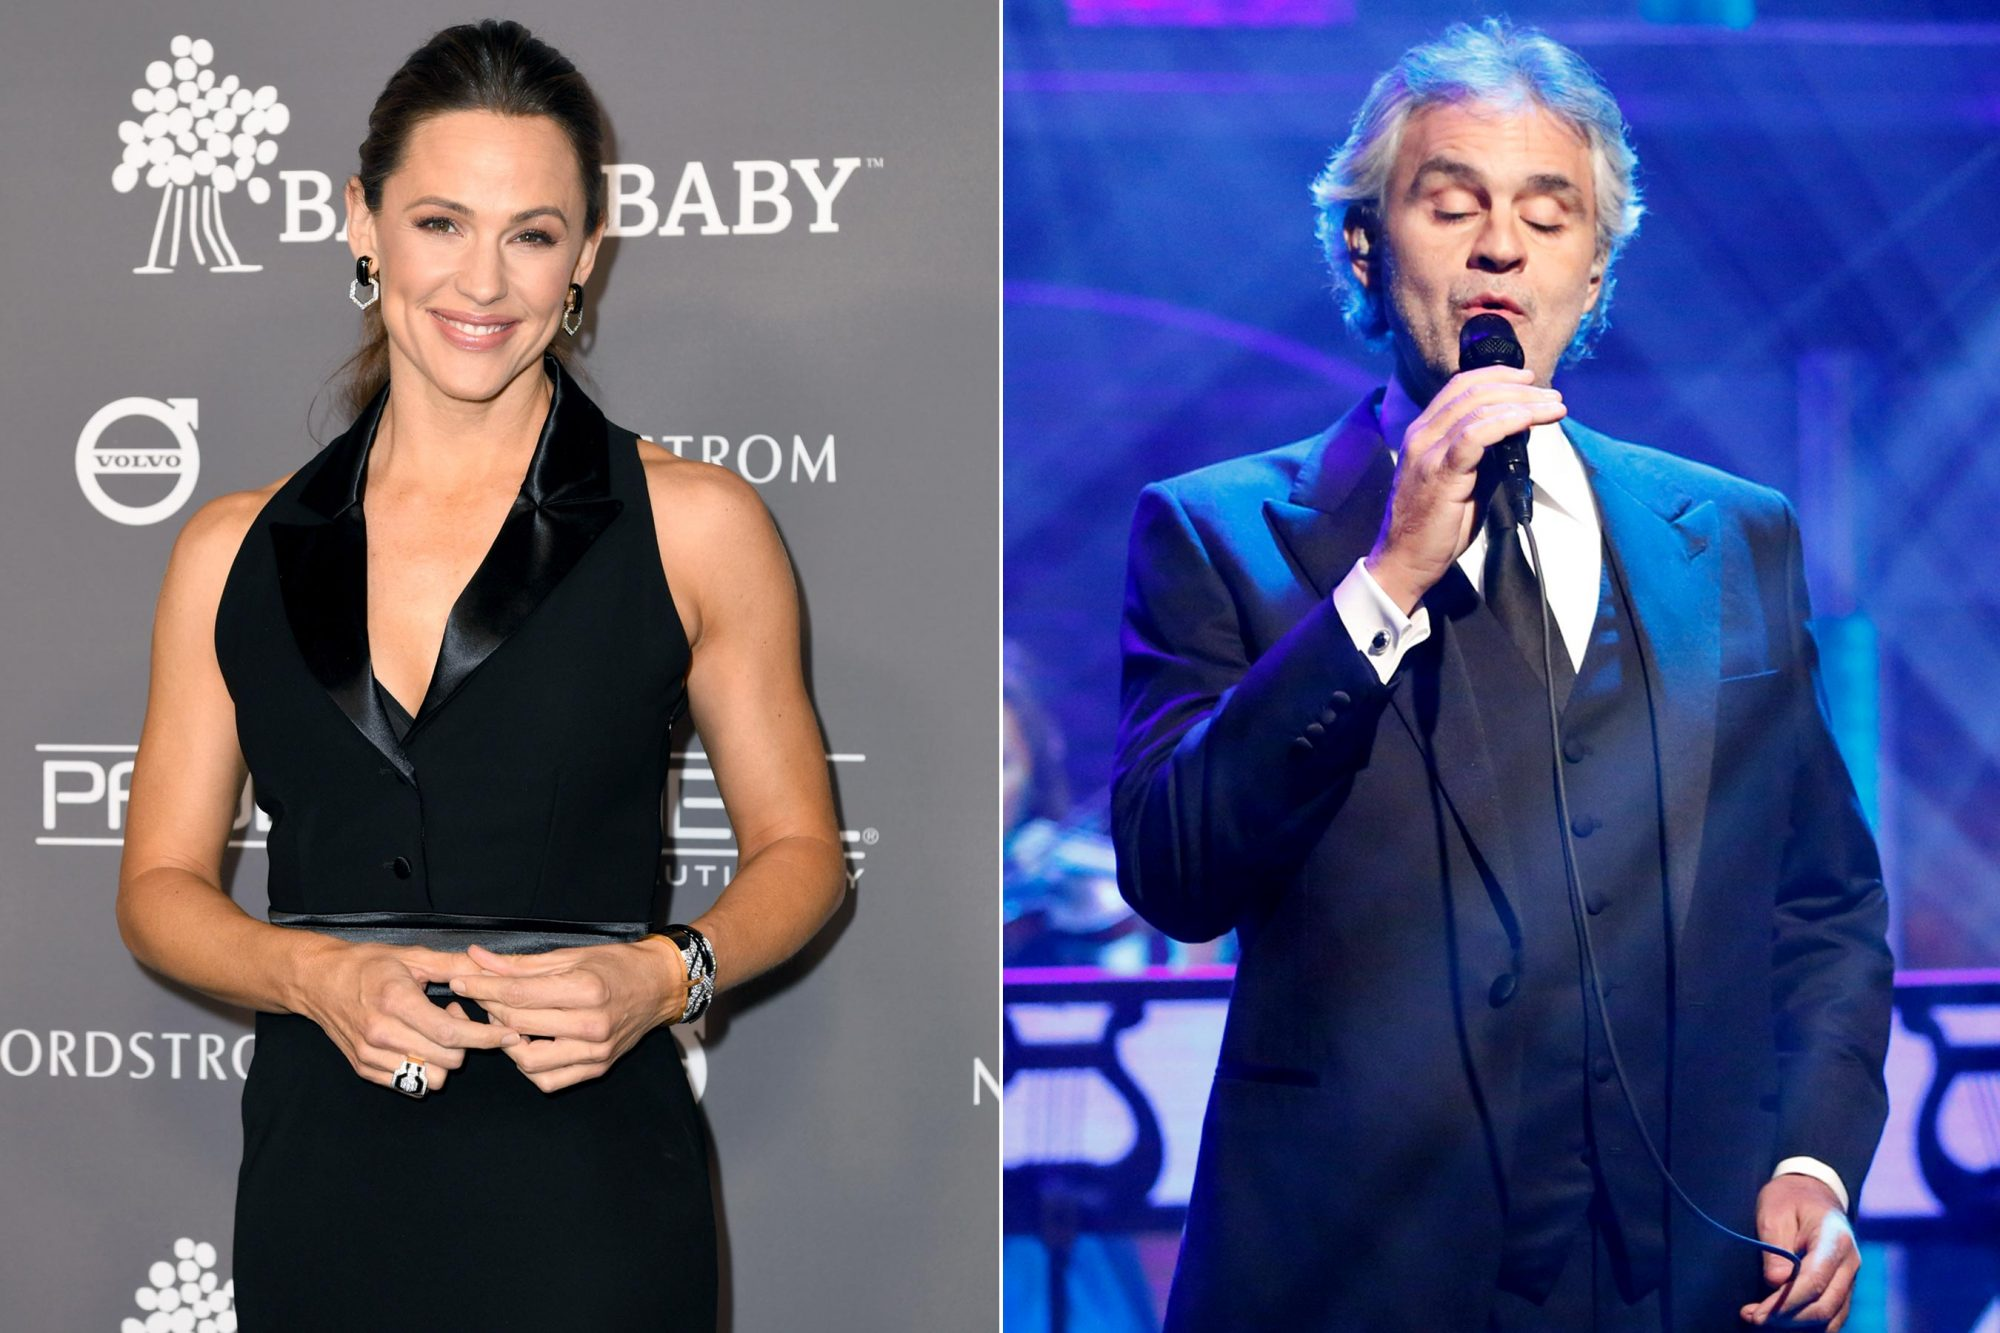 CULVER CITY, CA - NOVEMBER 10: Jennifer Garner attends the 2018 Baby2Baby Gala Presented by Paul Mitchell at 3LABS on November 10, 2018 in Culver City, California. (Photo by Emma McIntyre/Getty Images) LATE NIGHT WITH SETH MEYERS -- Episode 300 -- Pictured: Musical guest Andrea Bocelli performs on December 10, 2015 -- (Photo by: Jon Pack/NBC/NBCU Photo Bank via Getty Images)